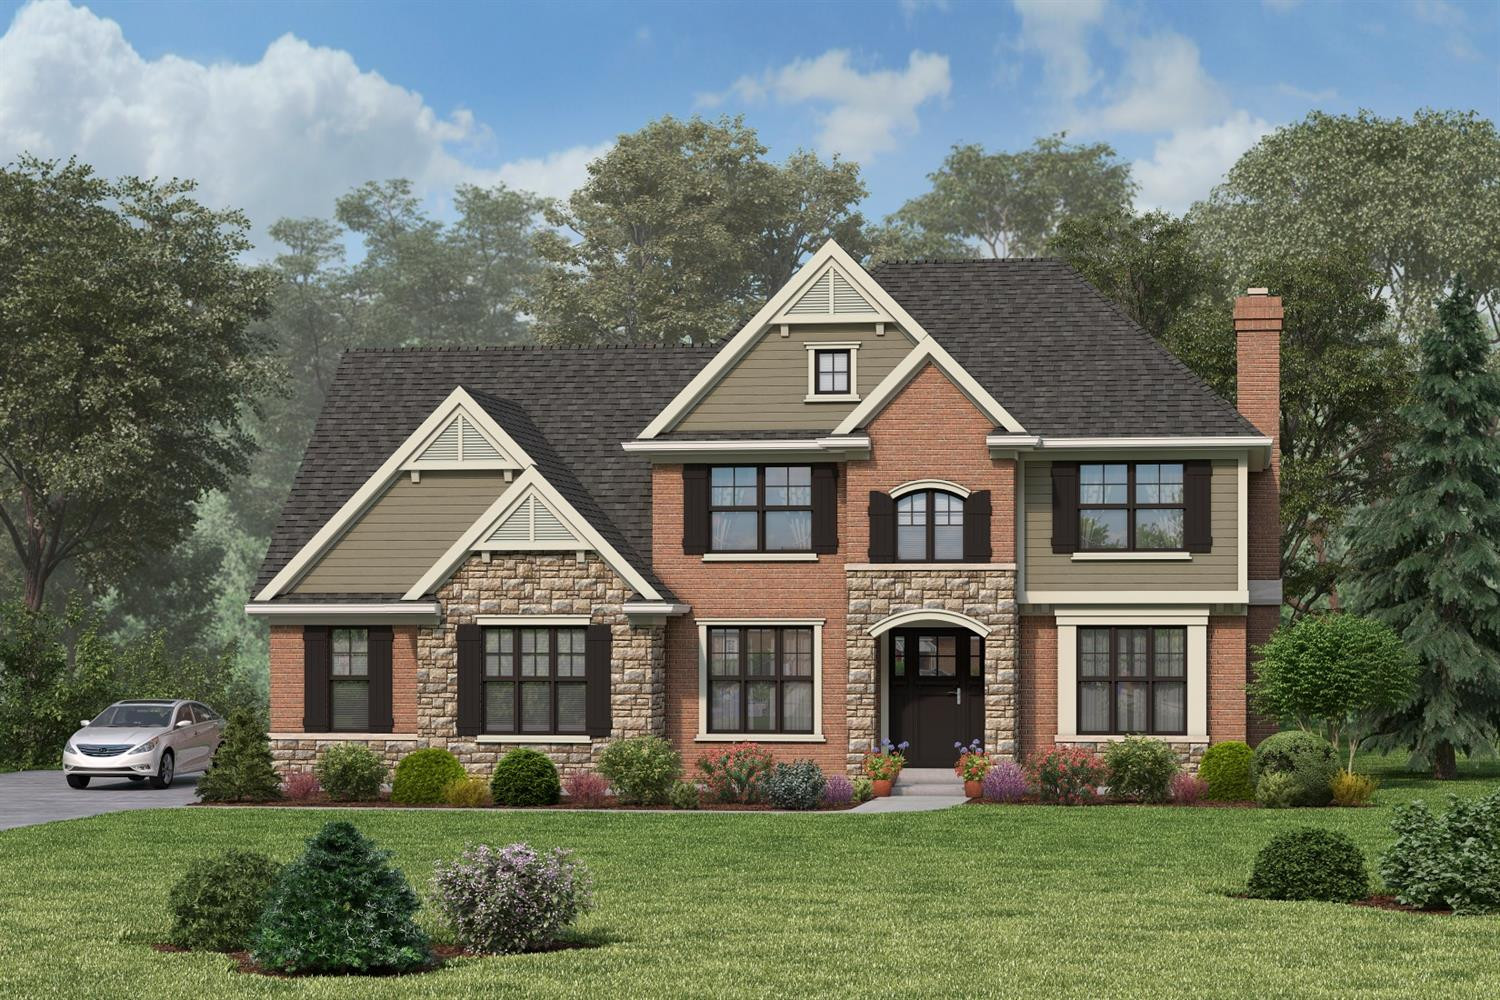 Last lot available in the prestigious neighborhood of Grand Oaks! Award winning Christopher Robin Homes presents another stunning custom home: build this beauty or choose your own design. Prime Anderson Twp location. Walk to shopping, dining, theater & more! Don't miss this one!